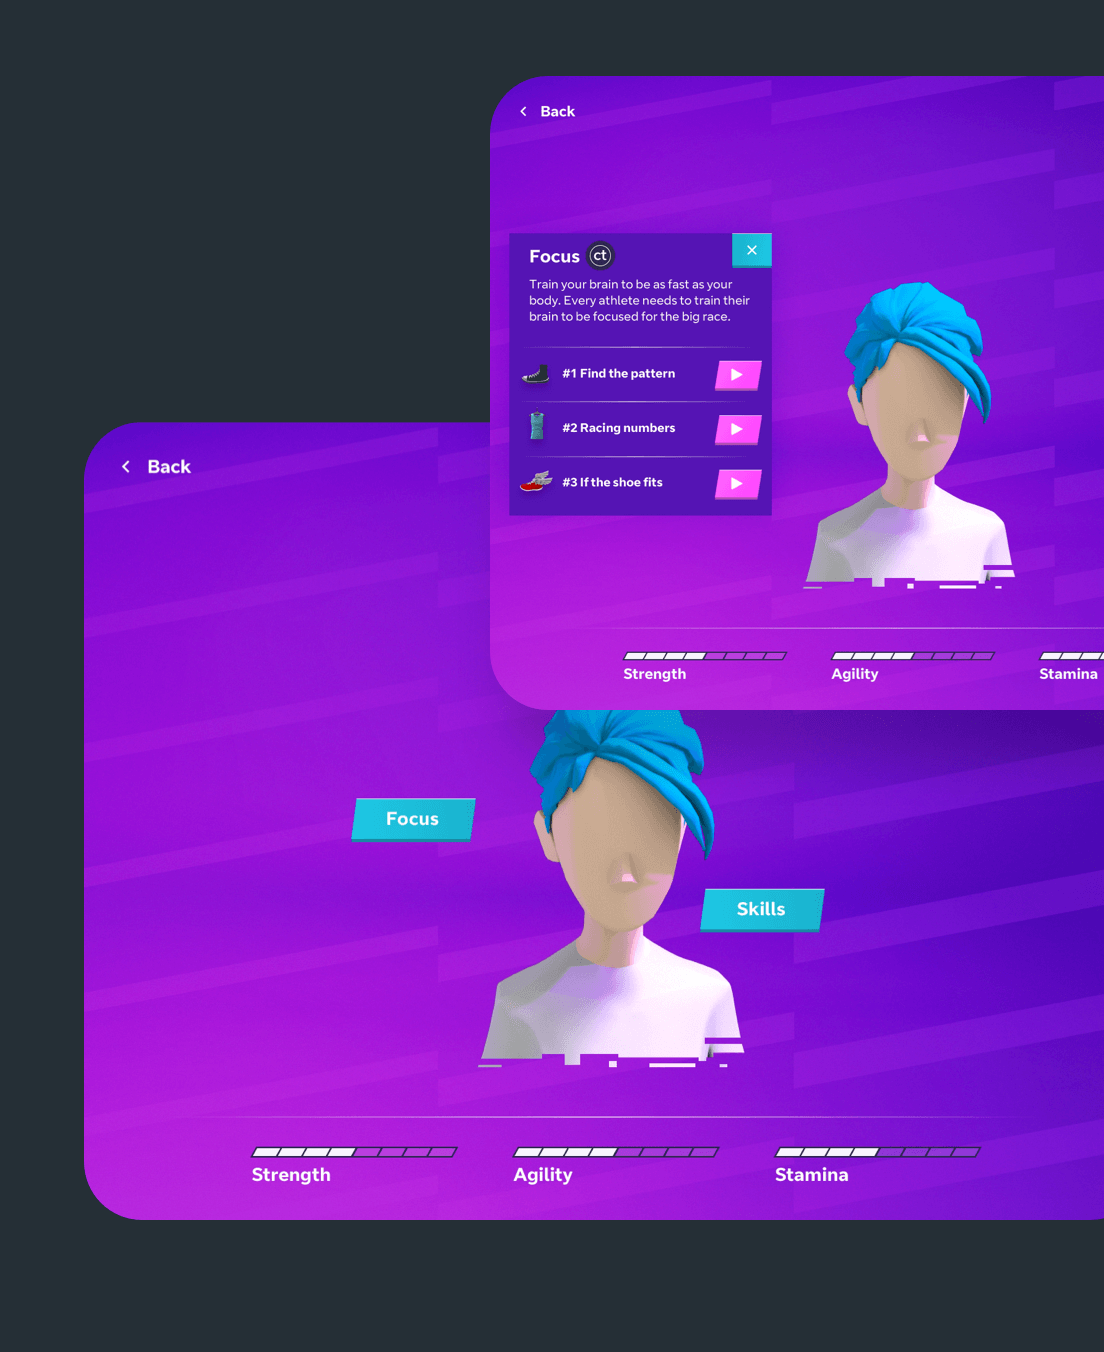 The UI for mind training on the iPad